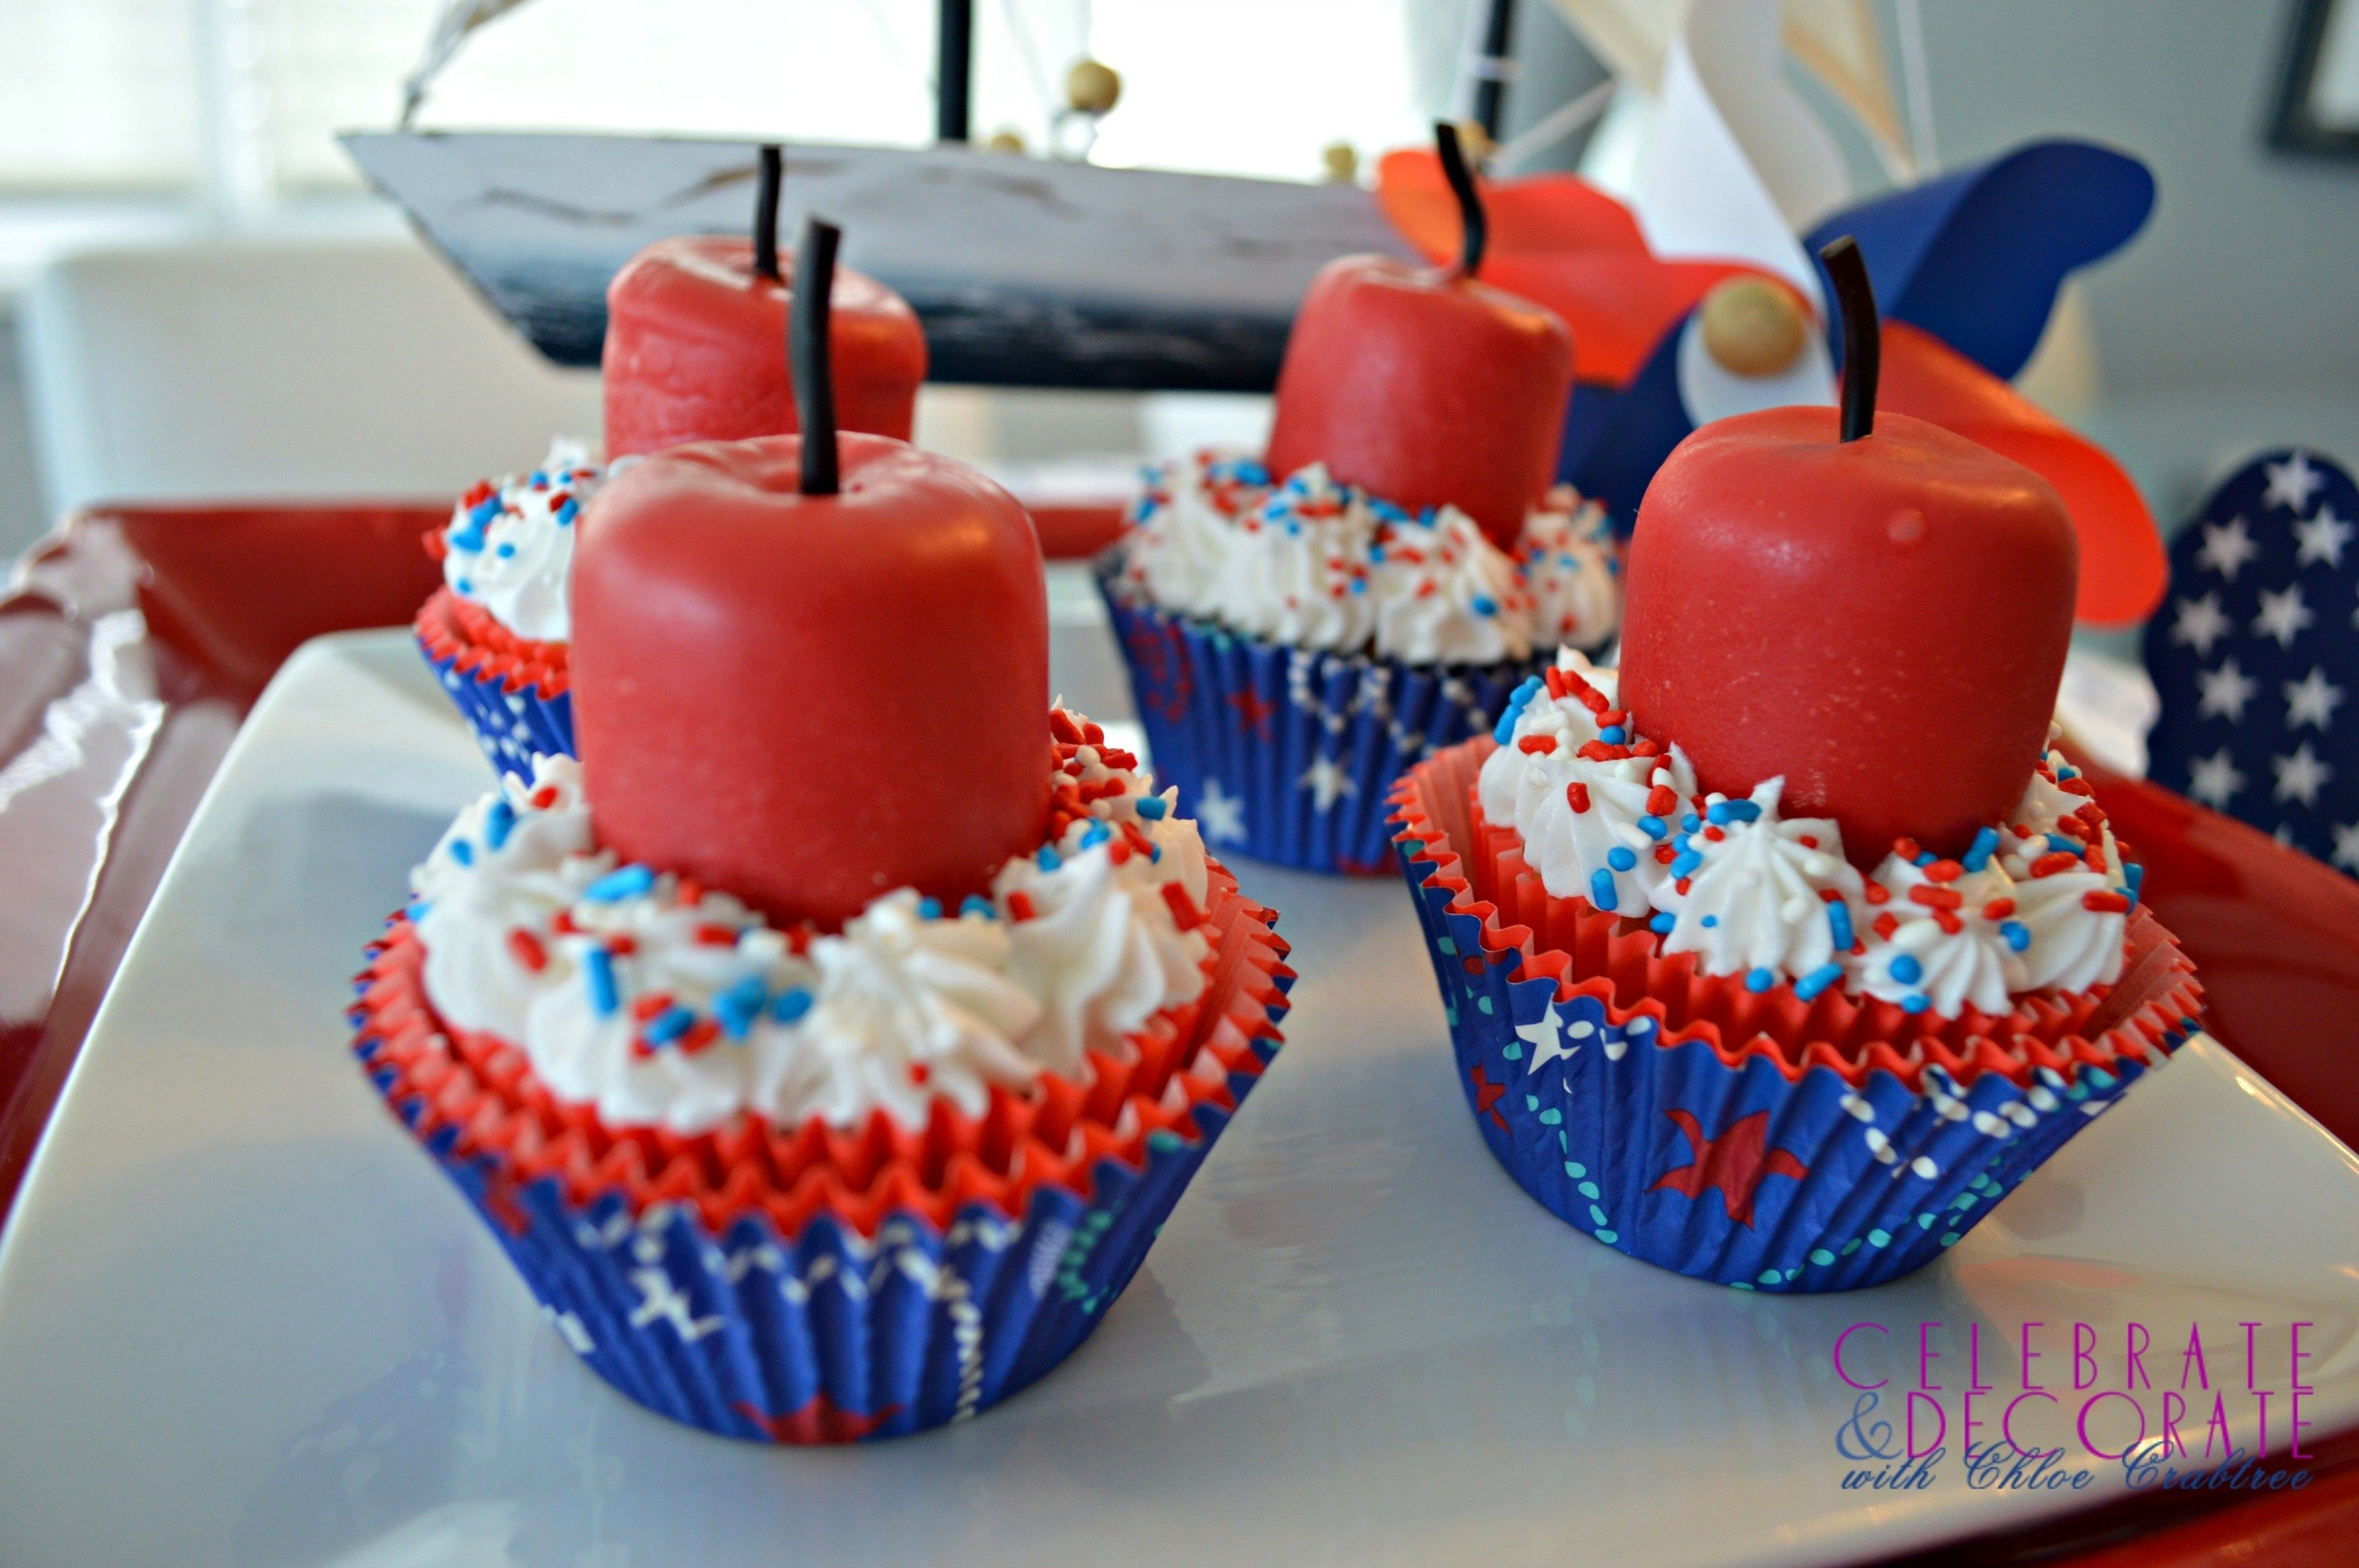 10 Elegant Fourth Of July Cupcake Ideas fourth of july firecracker cupcakes celebrate decorate 2020